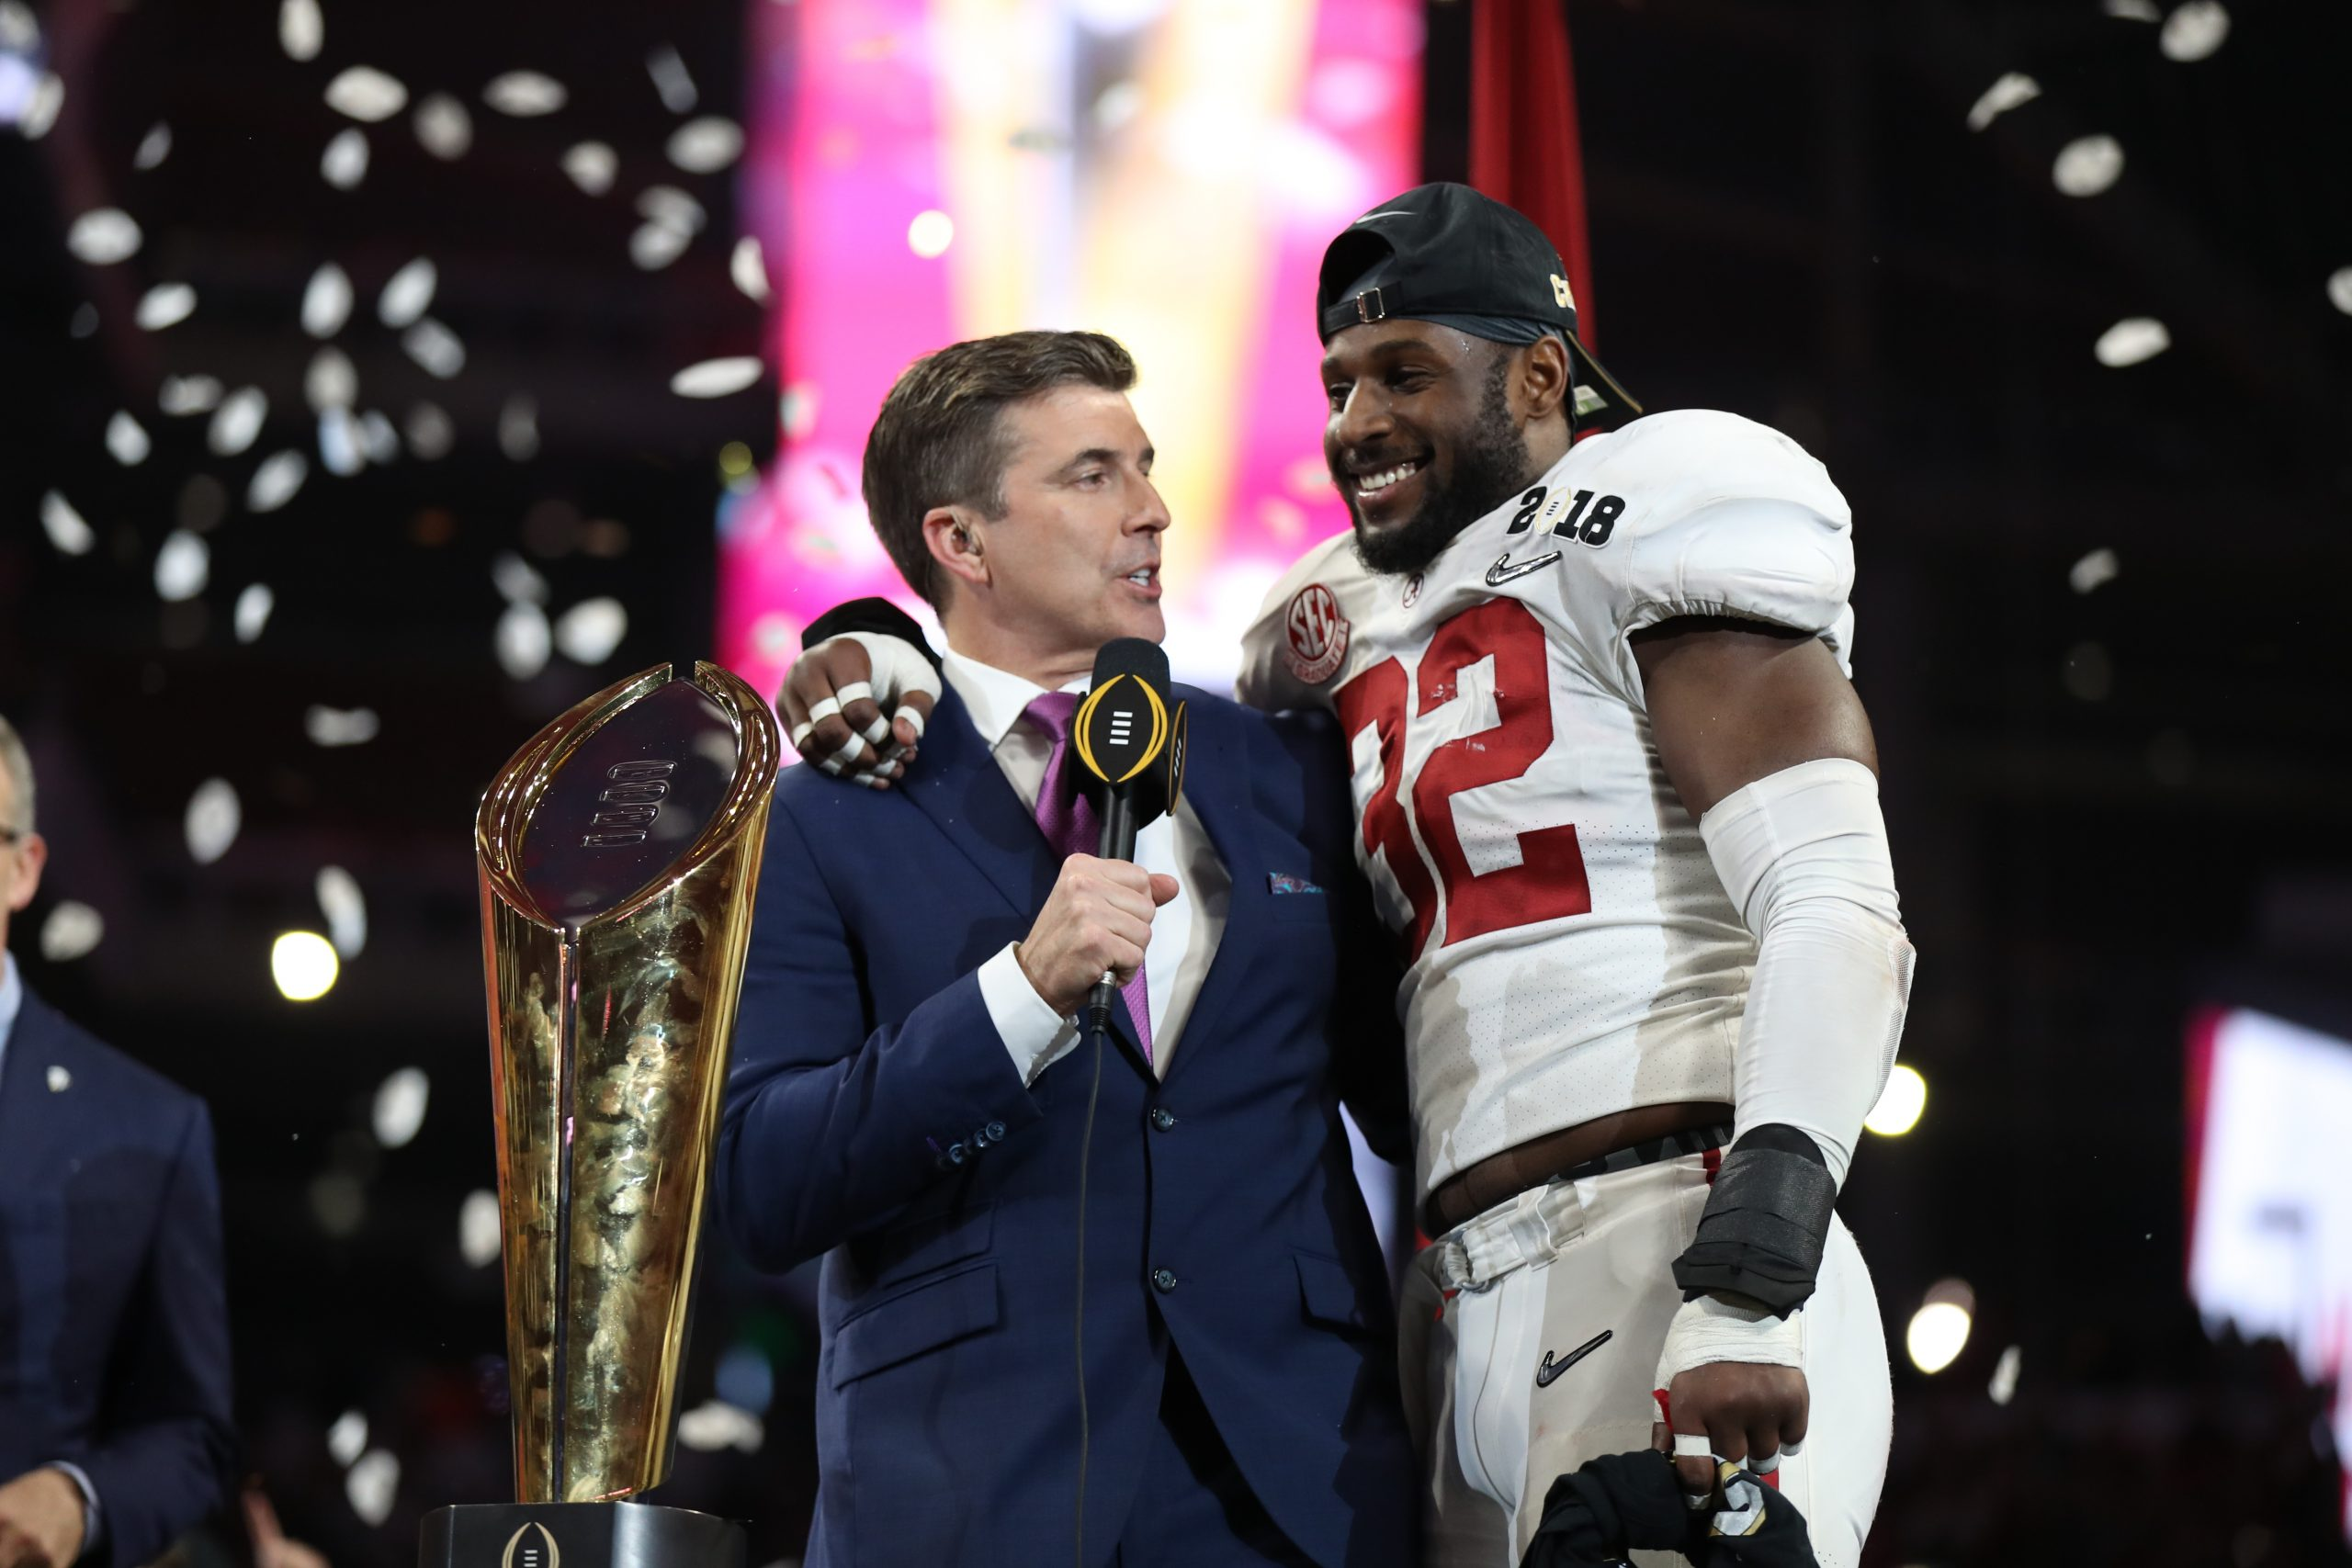 Rashaan-evans-32-of-the-university-of-alabama-crimson-tide-1-9-18